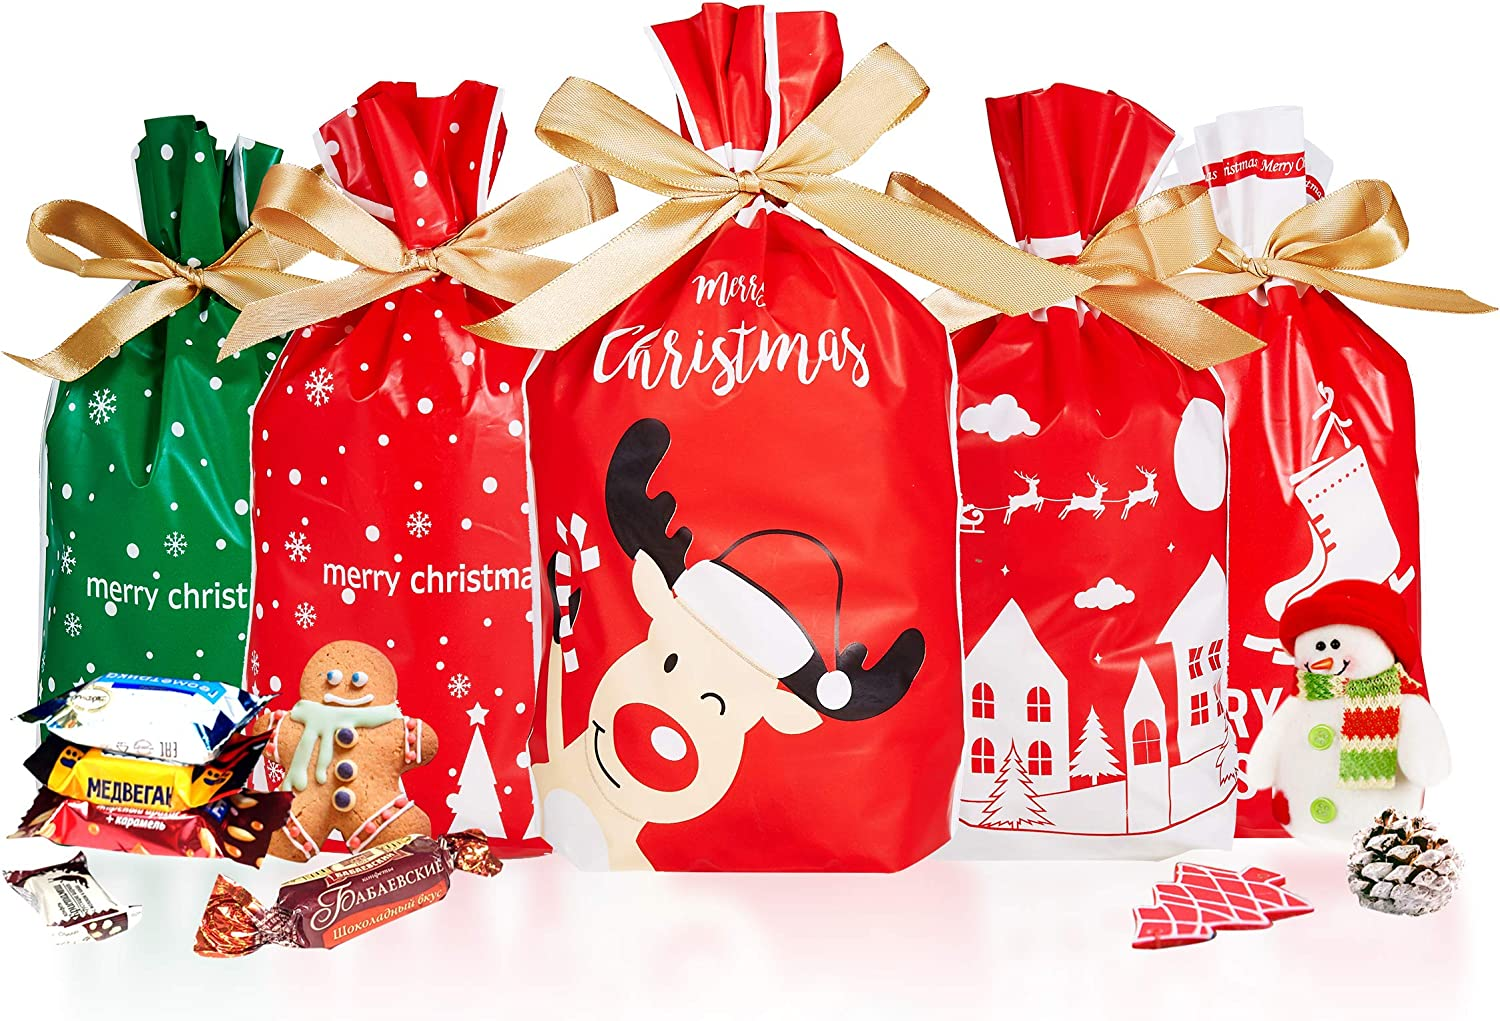 50 Pcs Christmas Candy Cookies Plastic Drawstring Gift Bags Merry Christmas Treat Bags for Birthday Party Snack Wrapping Wedding Gift Party Favor Merry X-mas